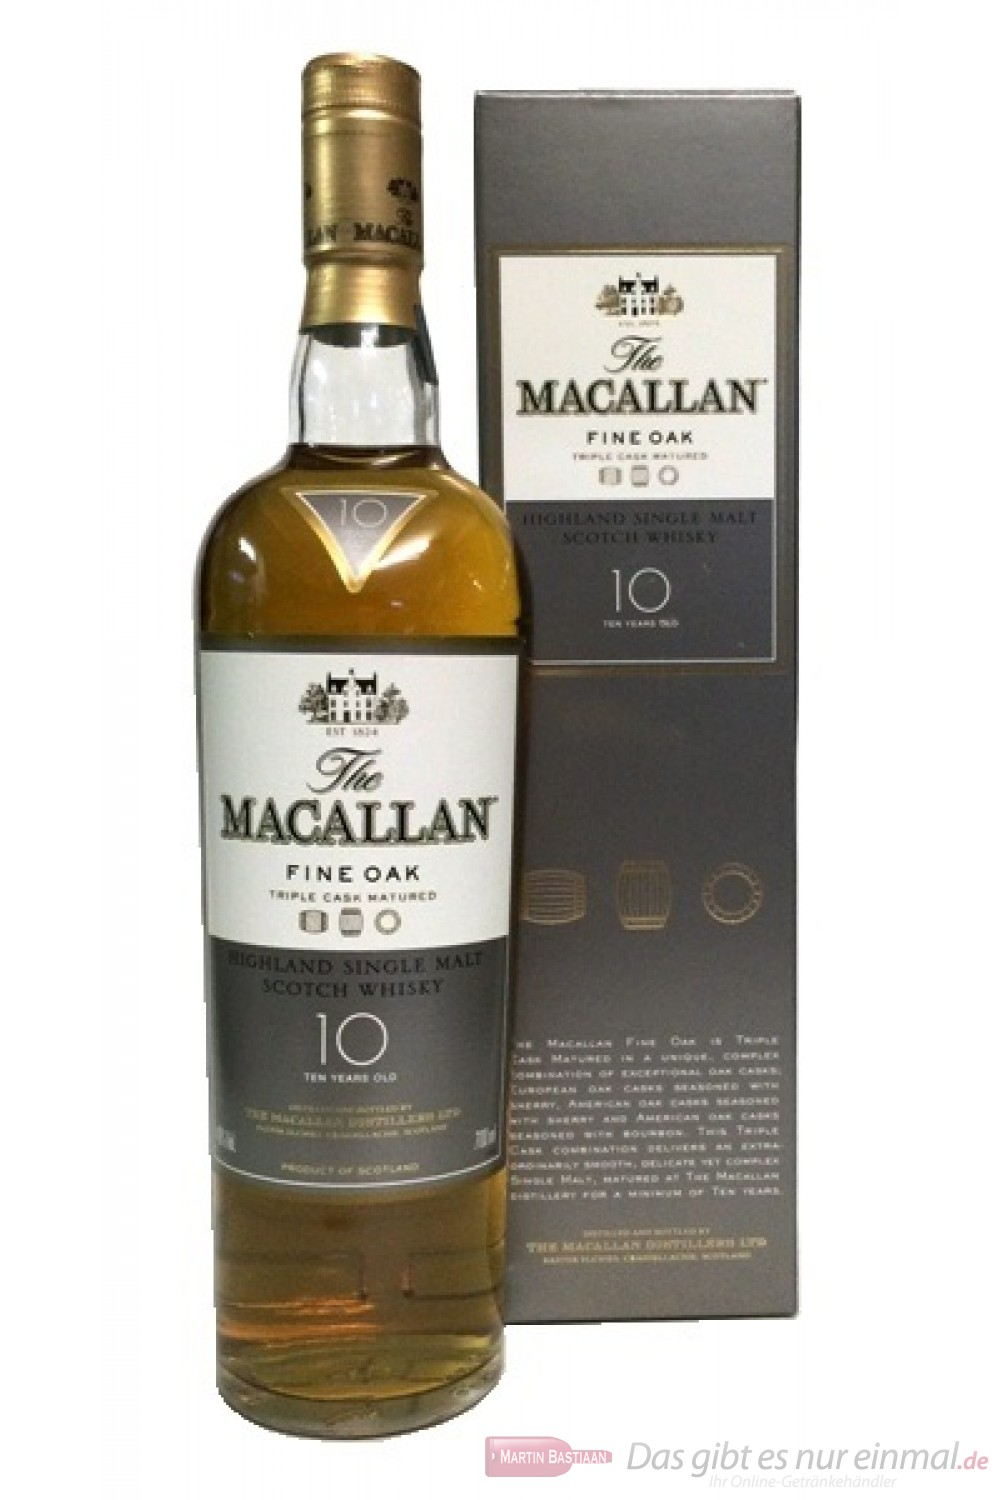 The Macallan Fine Oak 10 Years